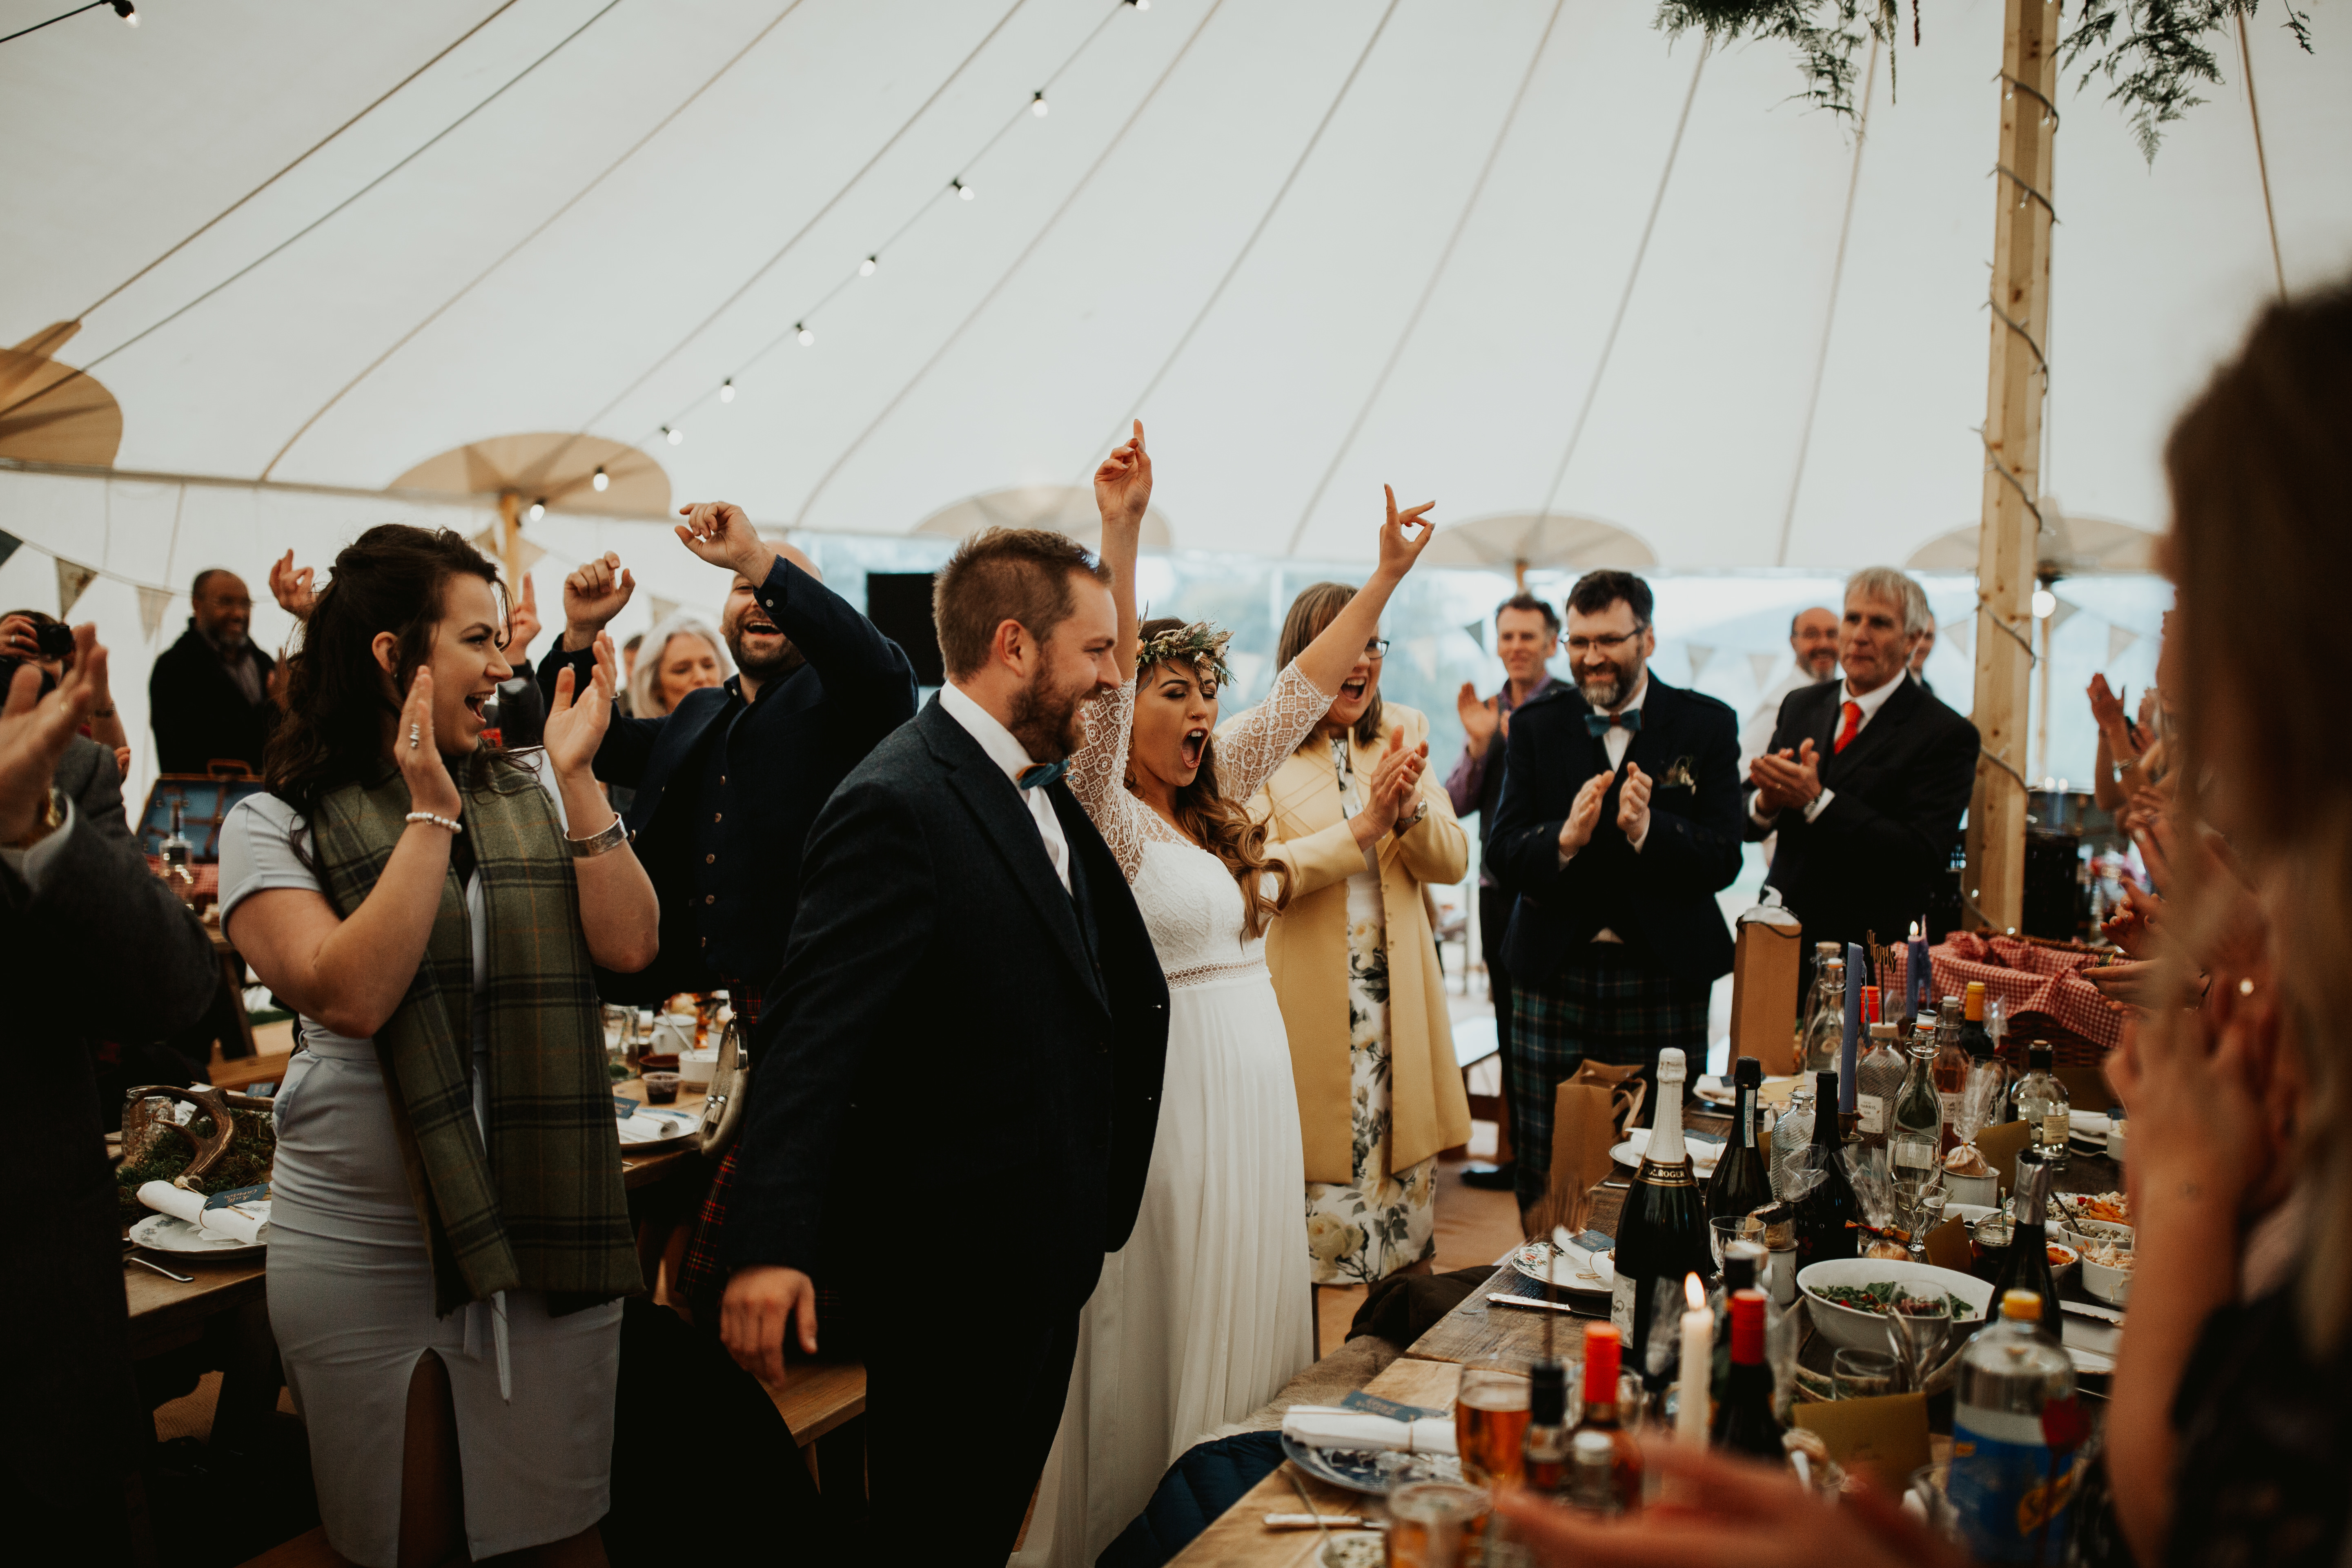 PapaKåta couple Eilidh & Lloyd's Sperry Wedding in Glenfarg, Perthshire captured by Colin Ross Photography- A toast to the couple